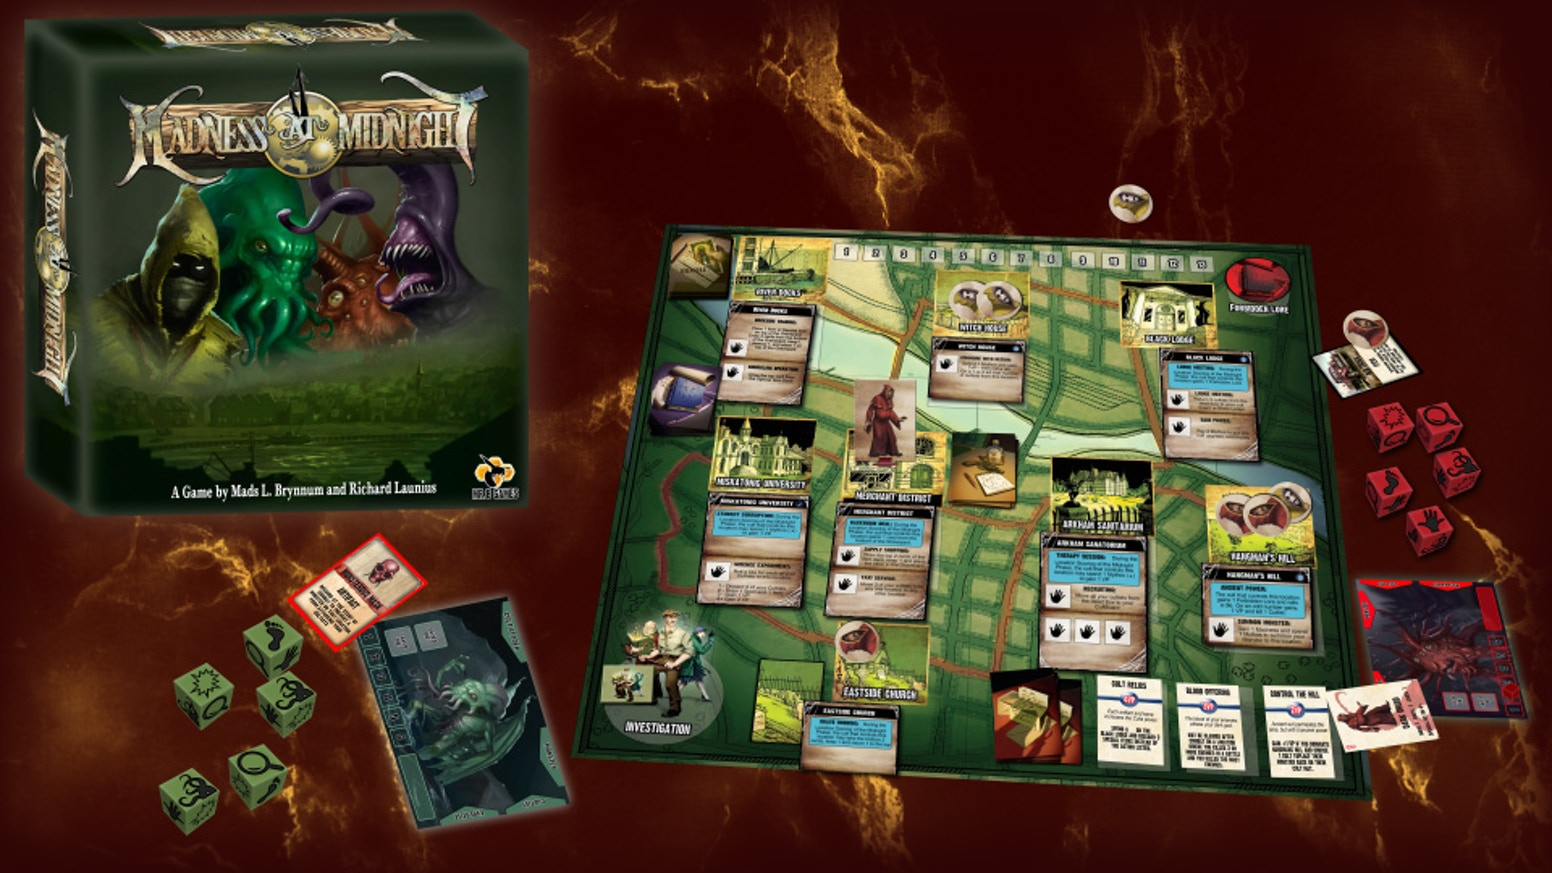 A game of Lovecraftian horror turned upside down. Will your cult rise to power, or will the investigators uncover your dark truths?